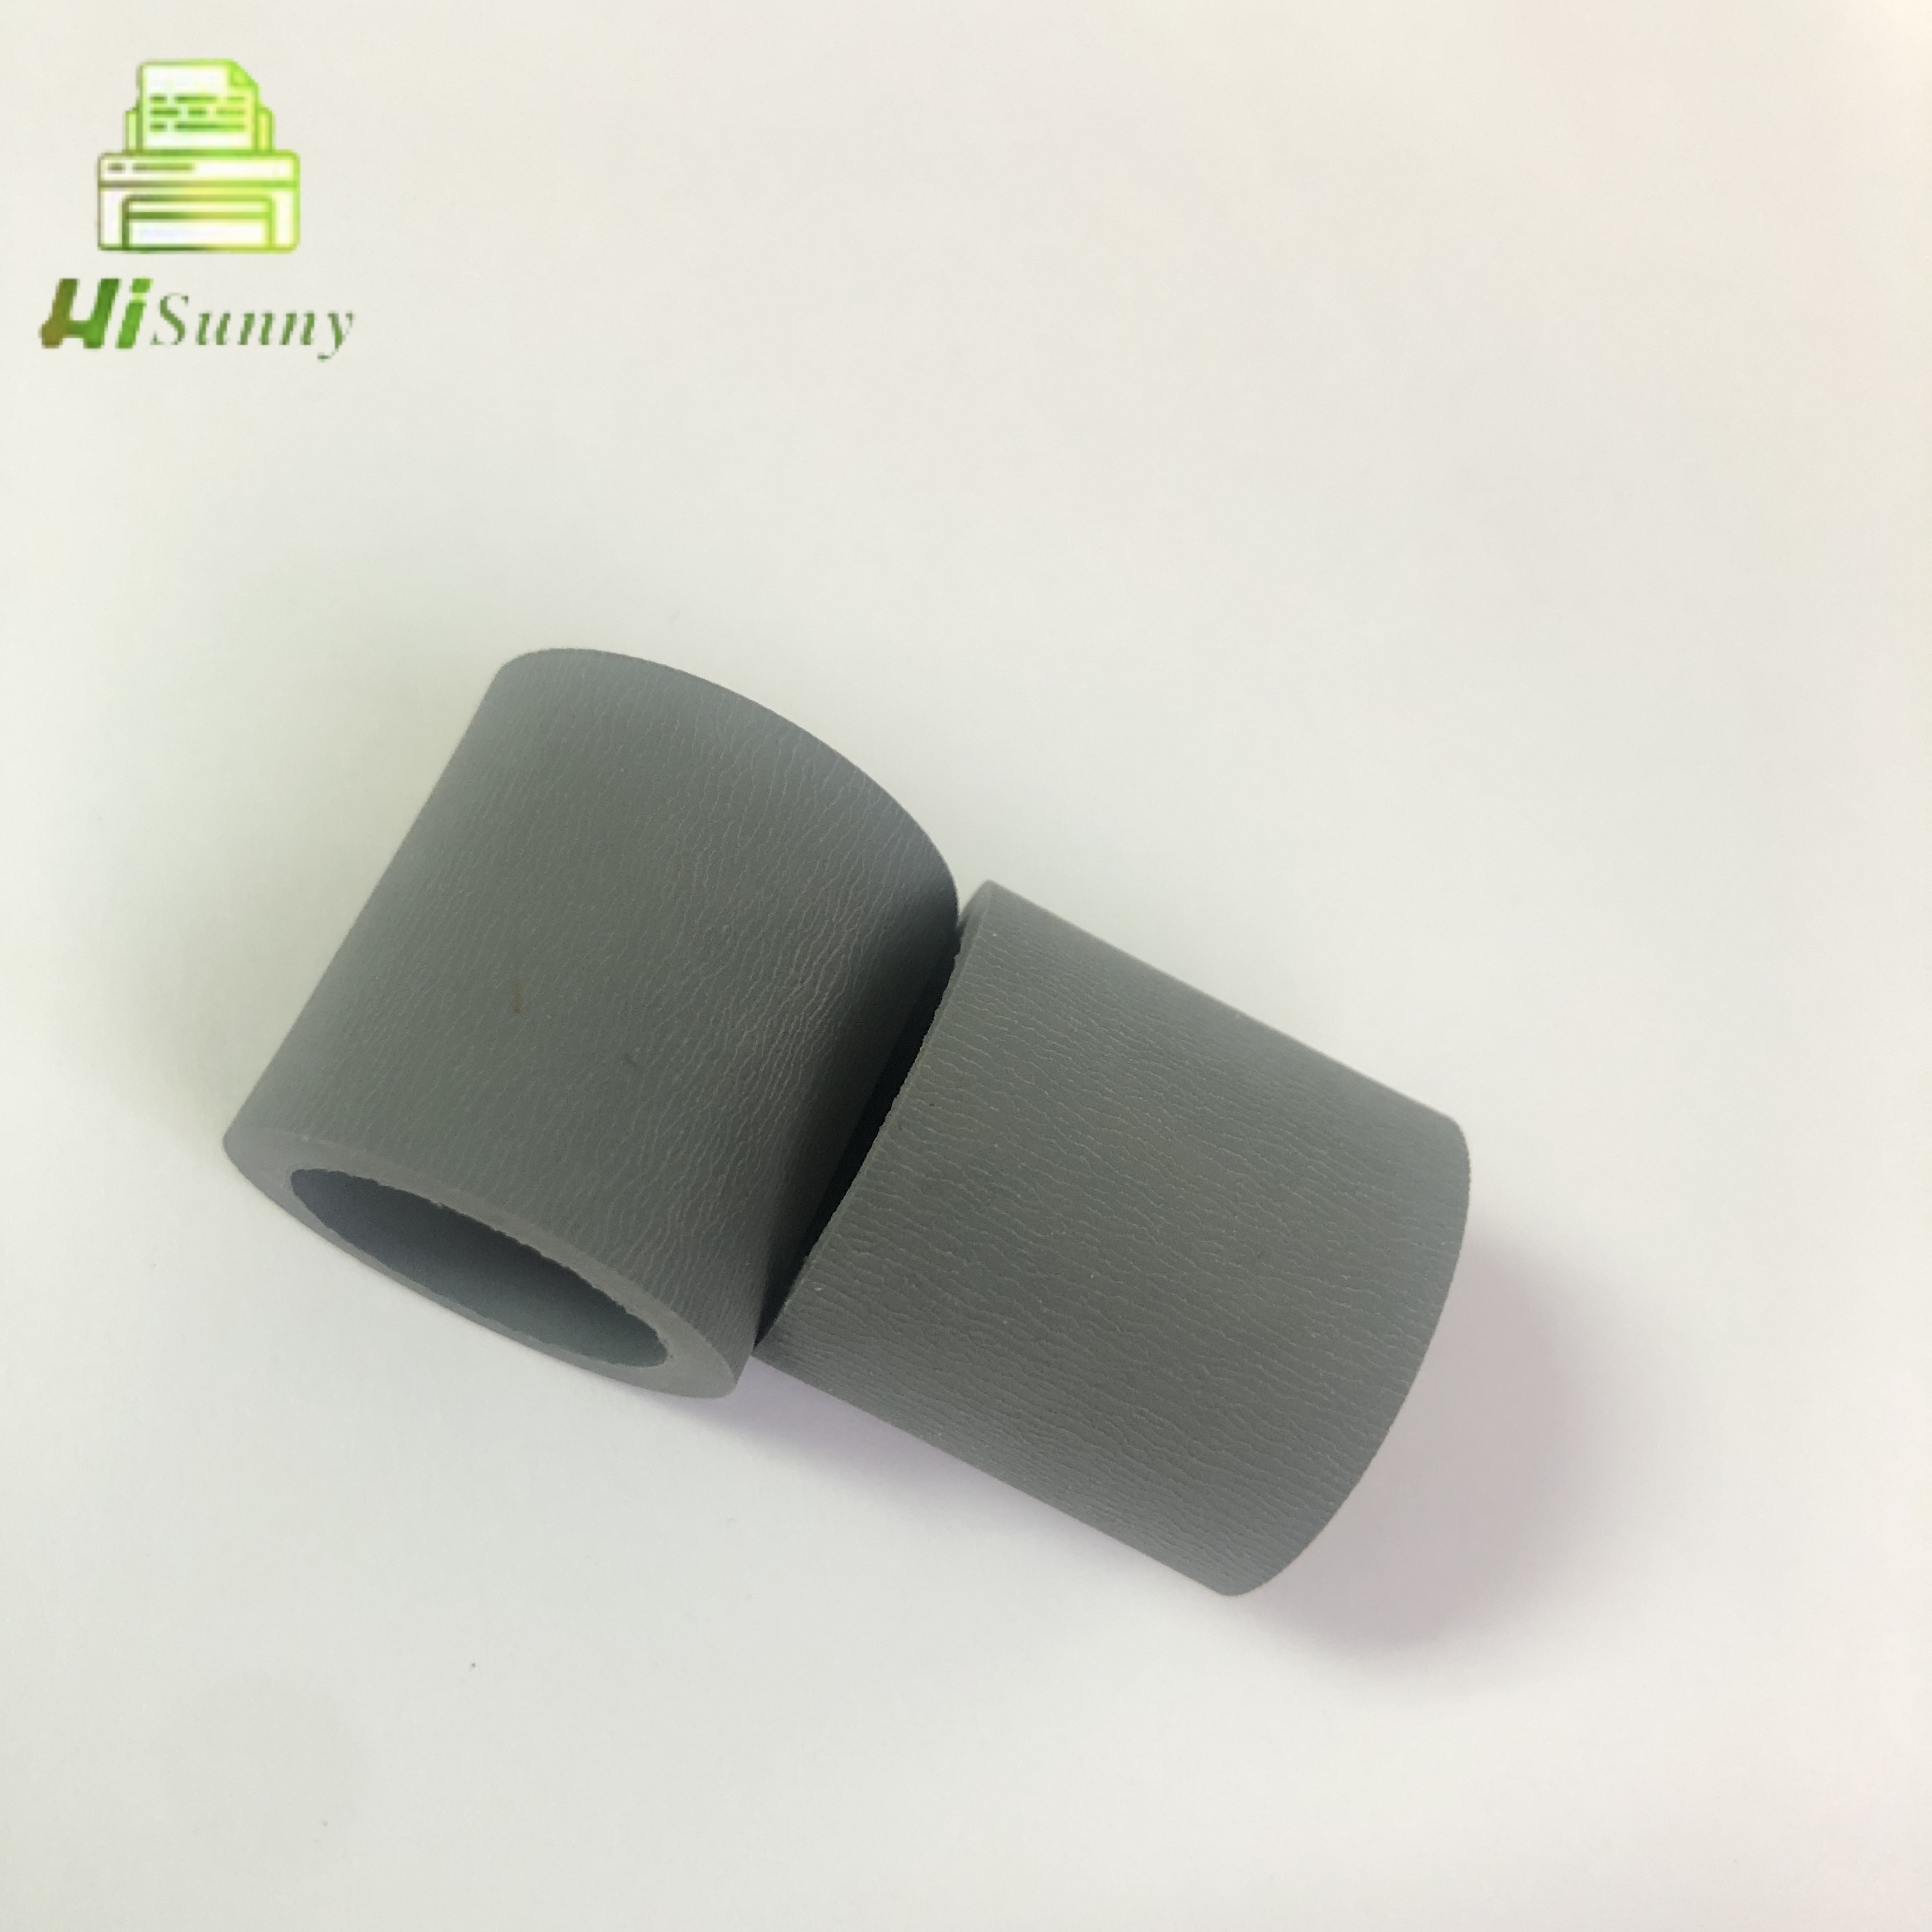 10X New RC1-2030-000 RC1-2050-000 RL1-0266-000 For HP 1010 1020 1022 M1005 LBP2900 1012 1018 3015 3030 3020 Pickup Roller Tire